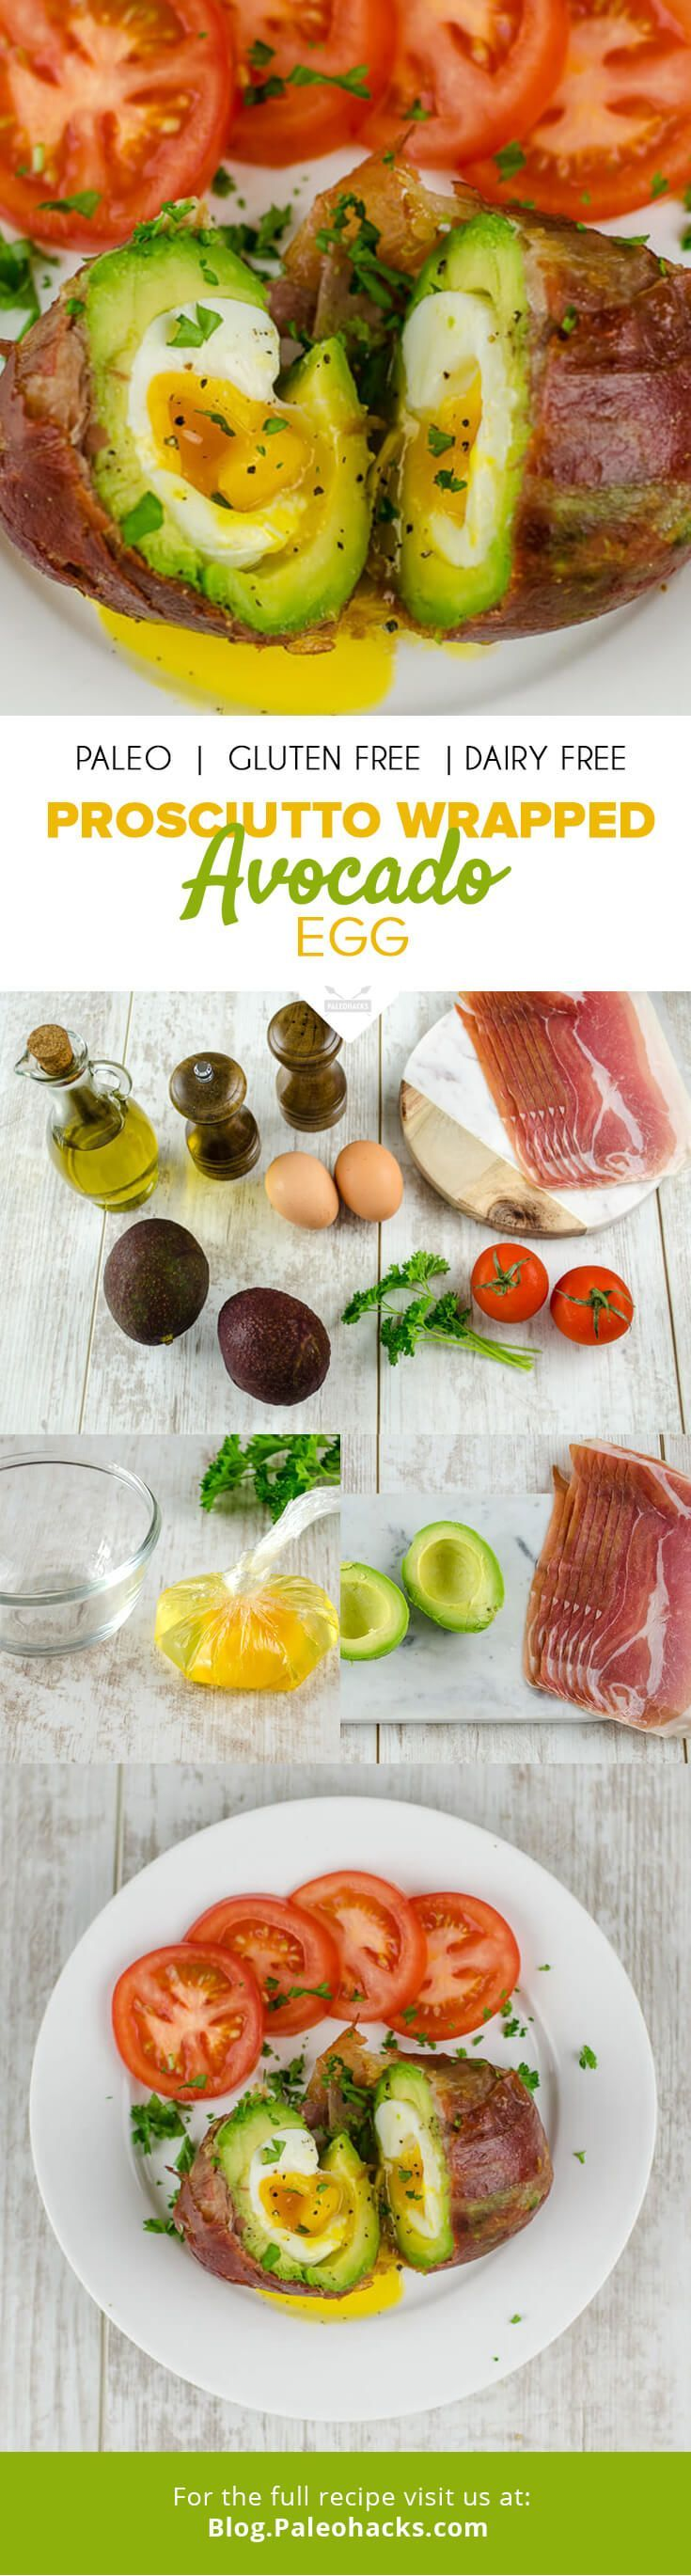 Prosciutto-Wrapped Avocado Egg   #justeatrealfood #paleohacks